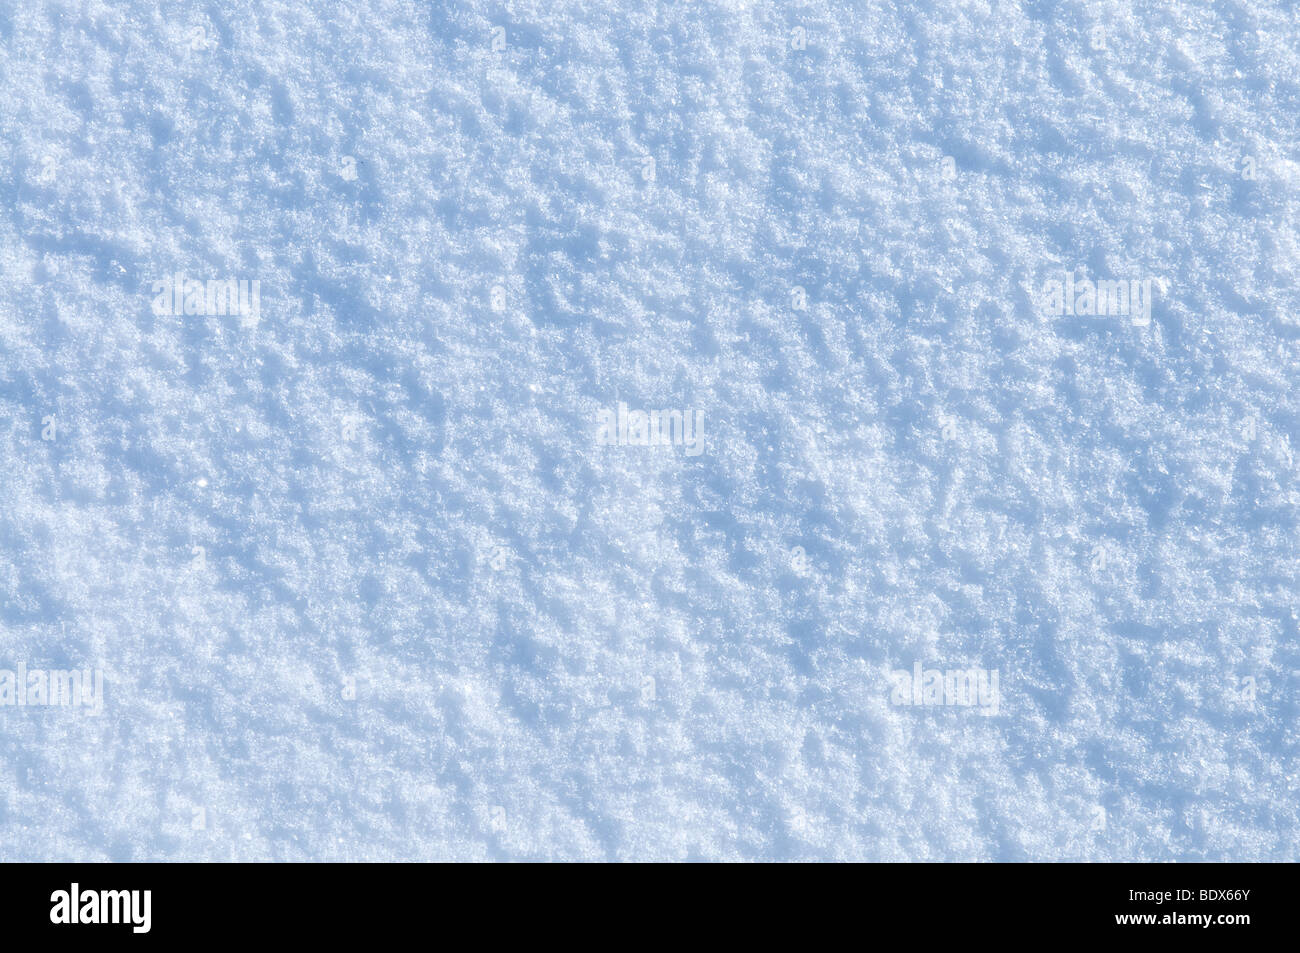 Natural fresh snow texture or background - Stock Image